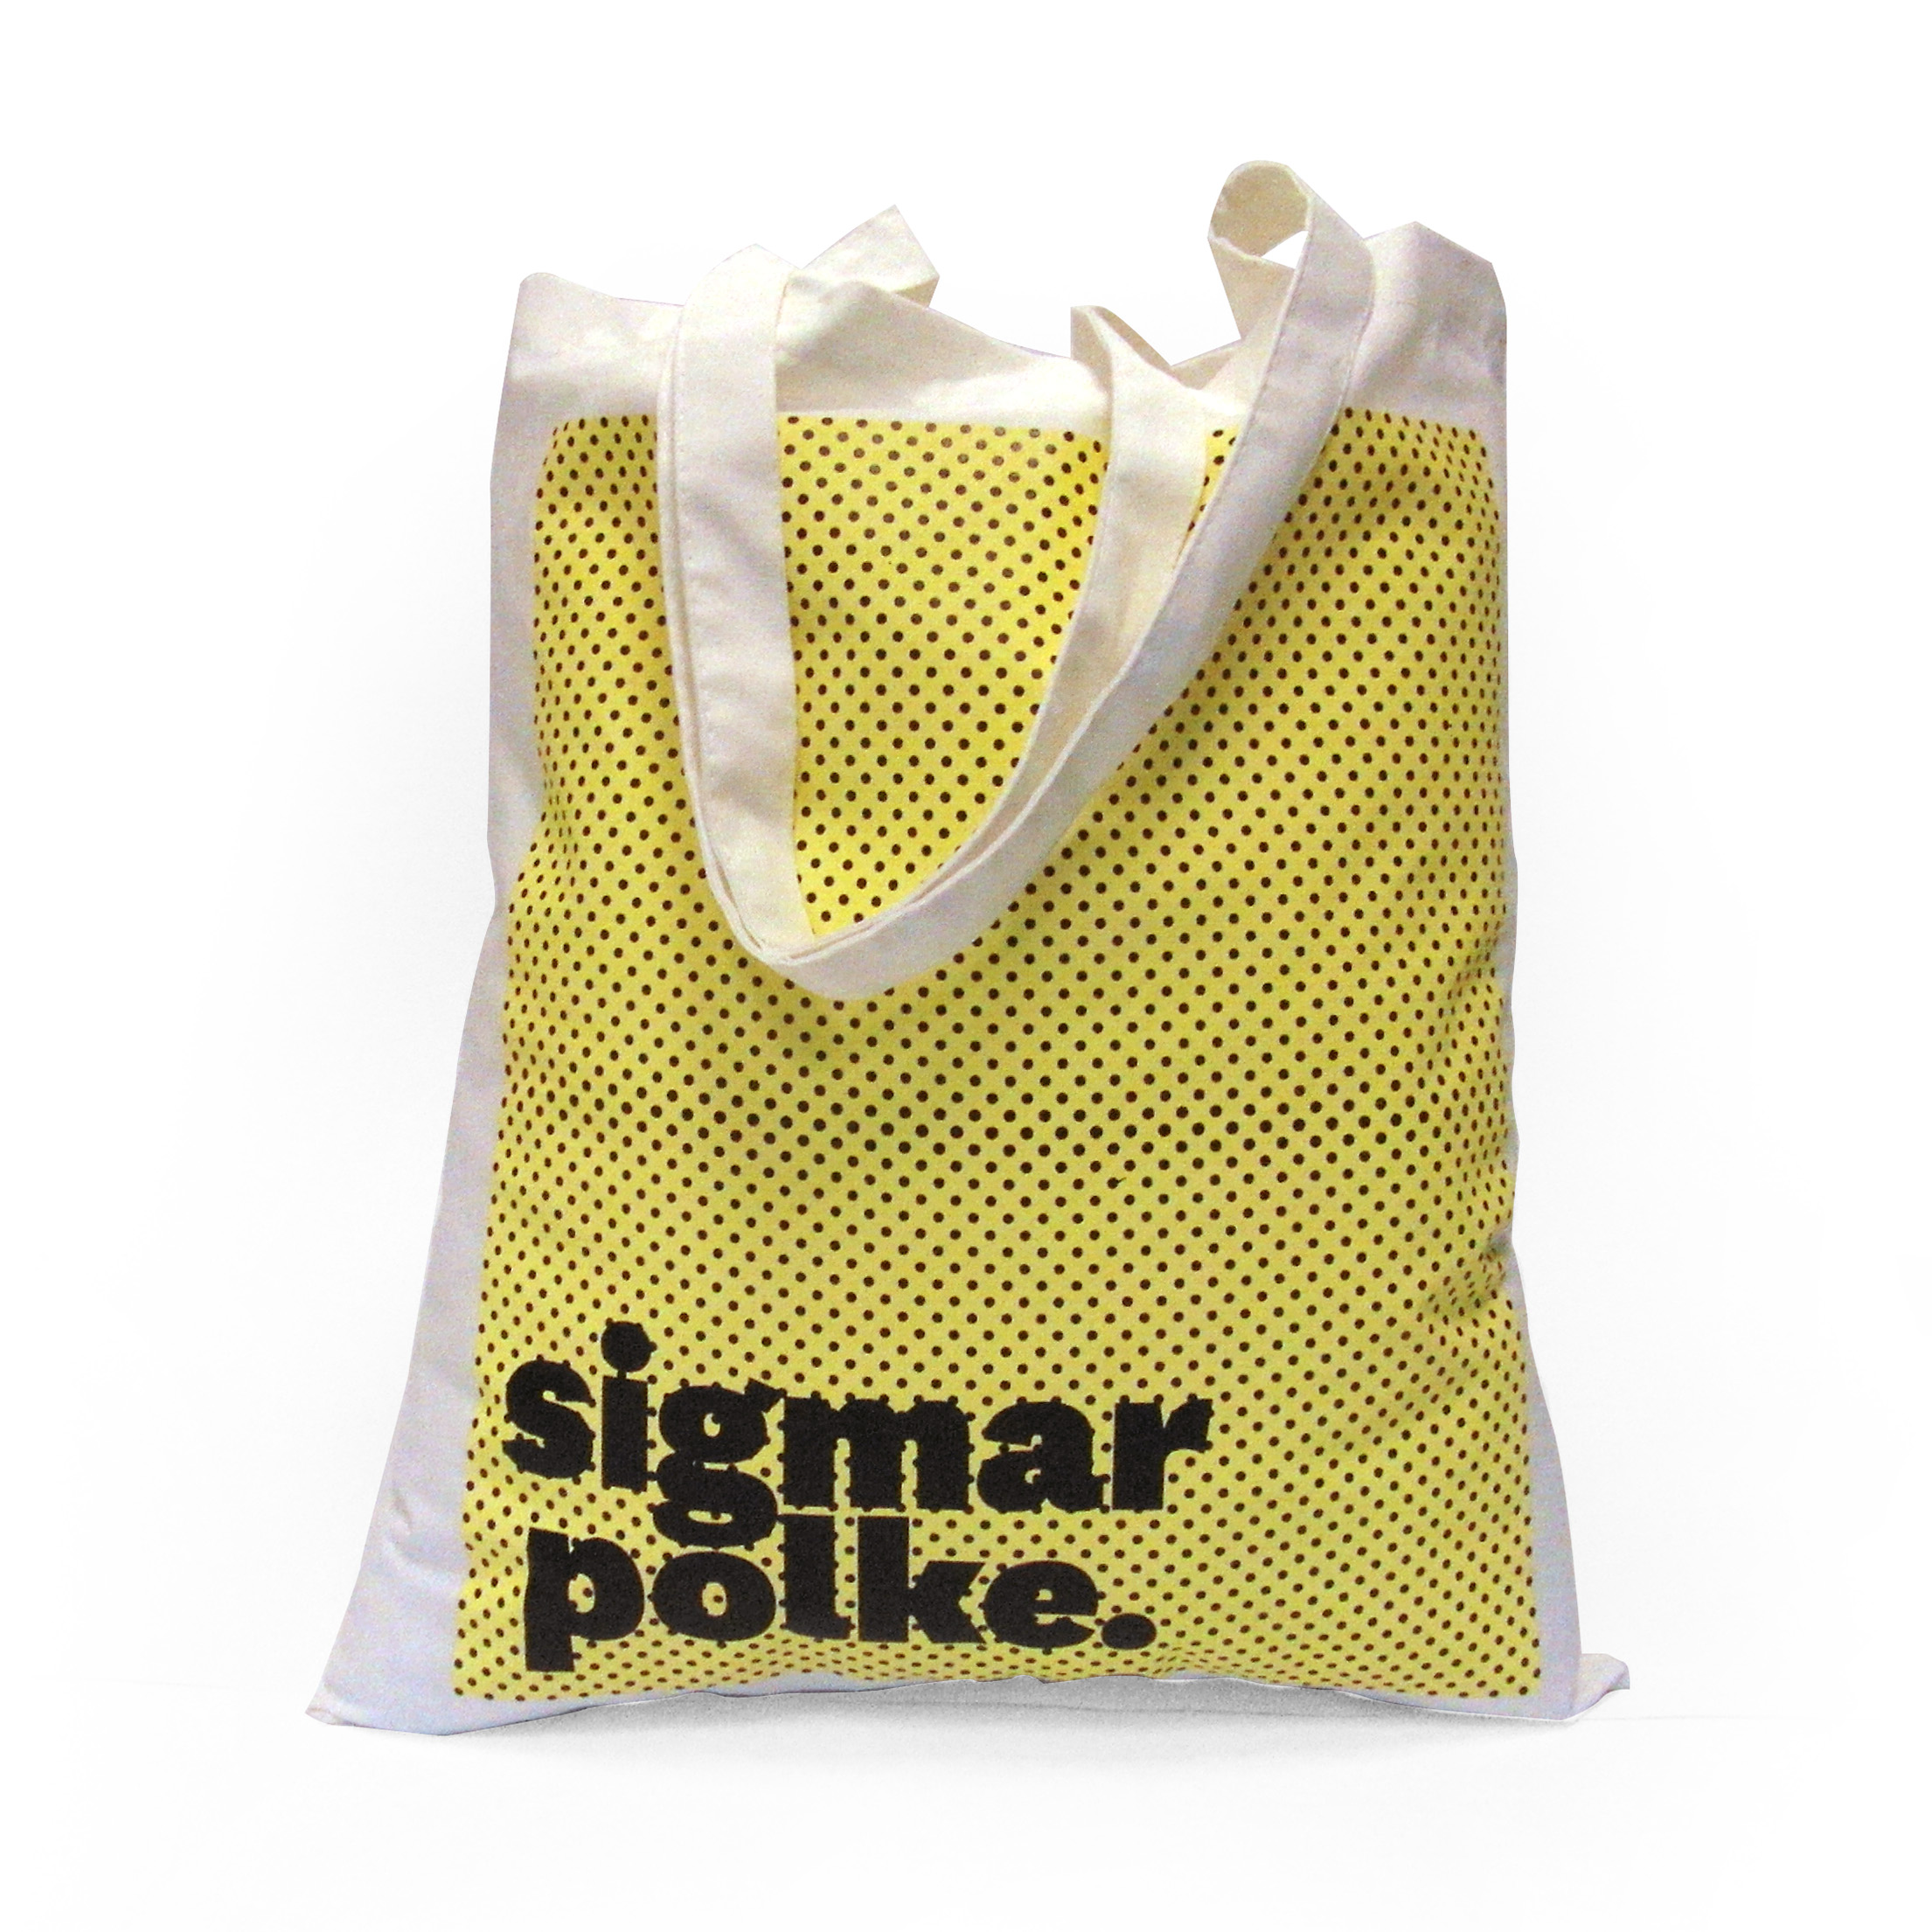 shopping-bag-polke-sadesign-3